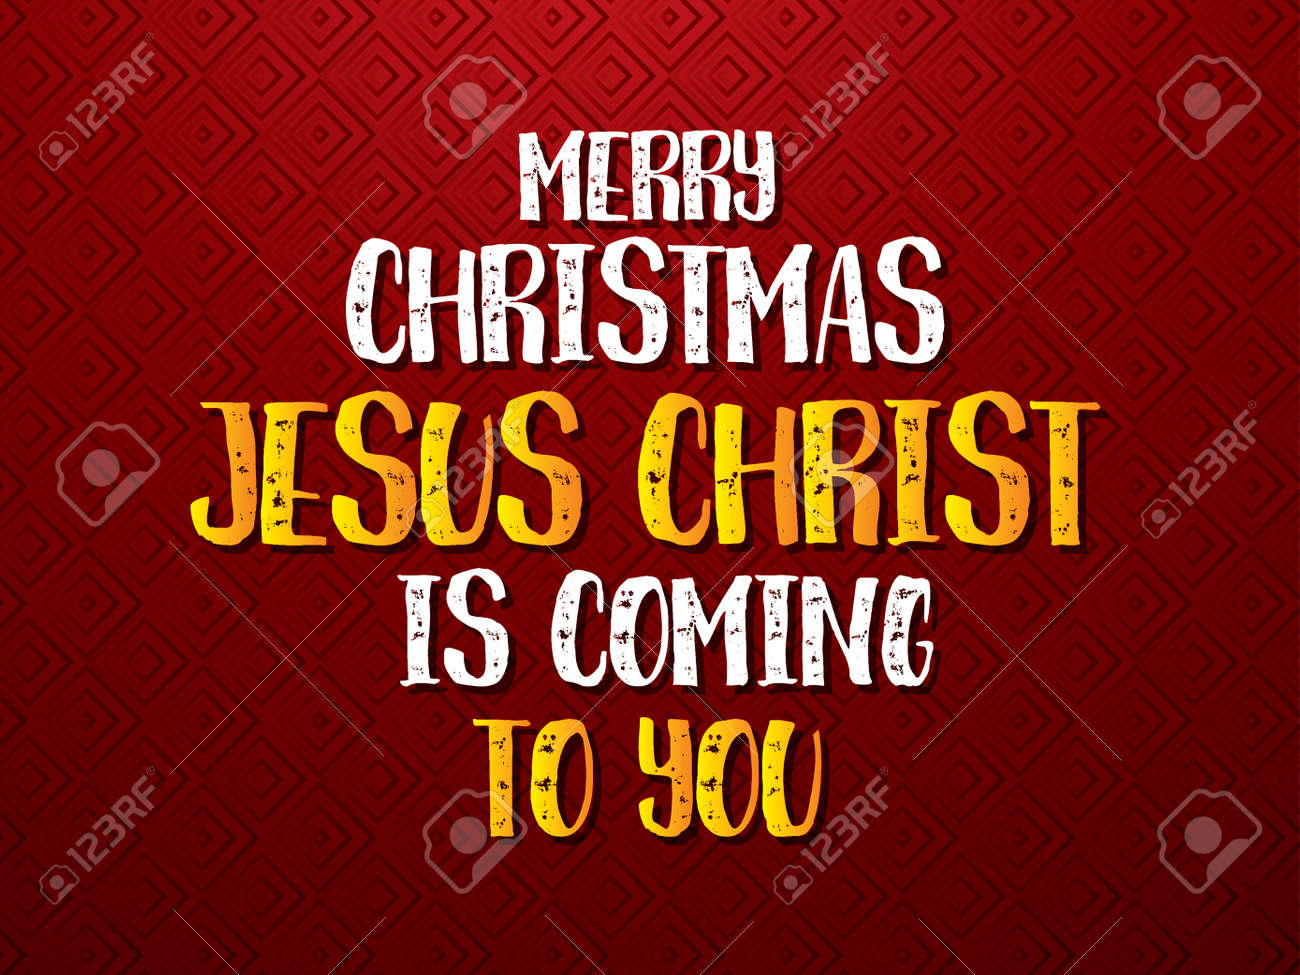 Merry Christmas Christian.Merry Christmas Jesus Christ Is Coming To You Font Designed